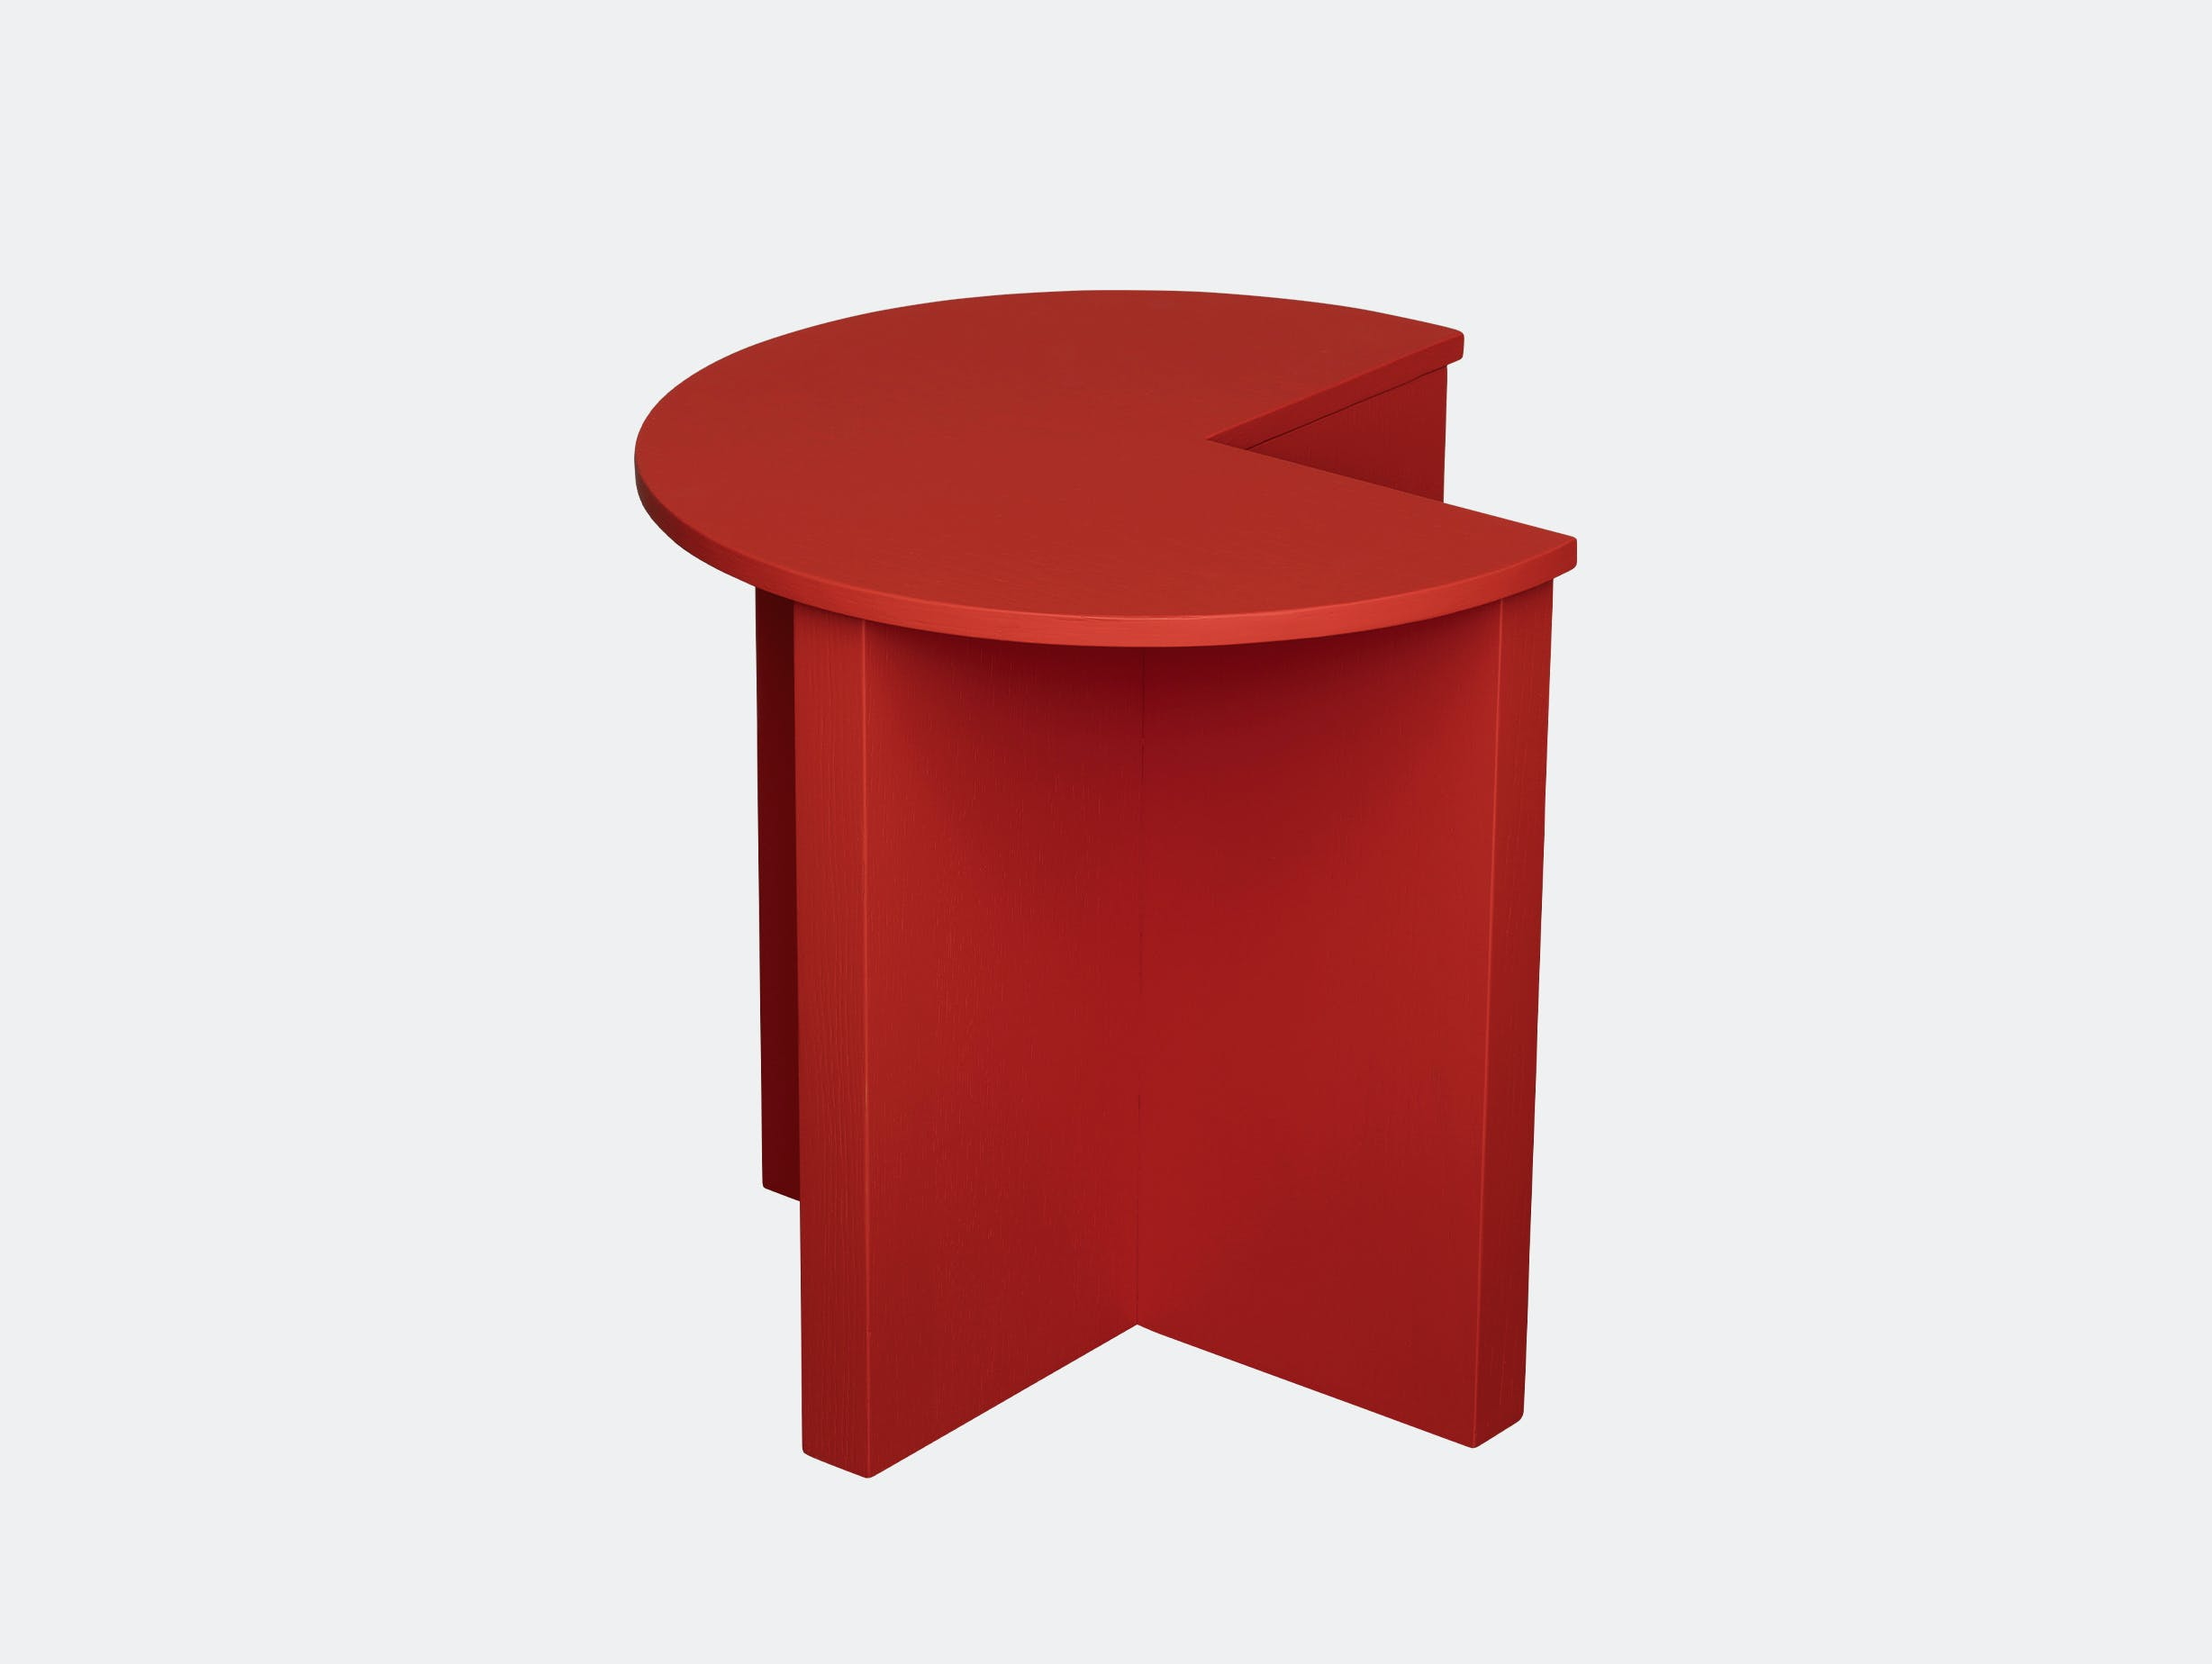 Fogia supersolid object 2 red 2